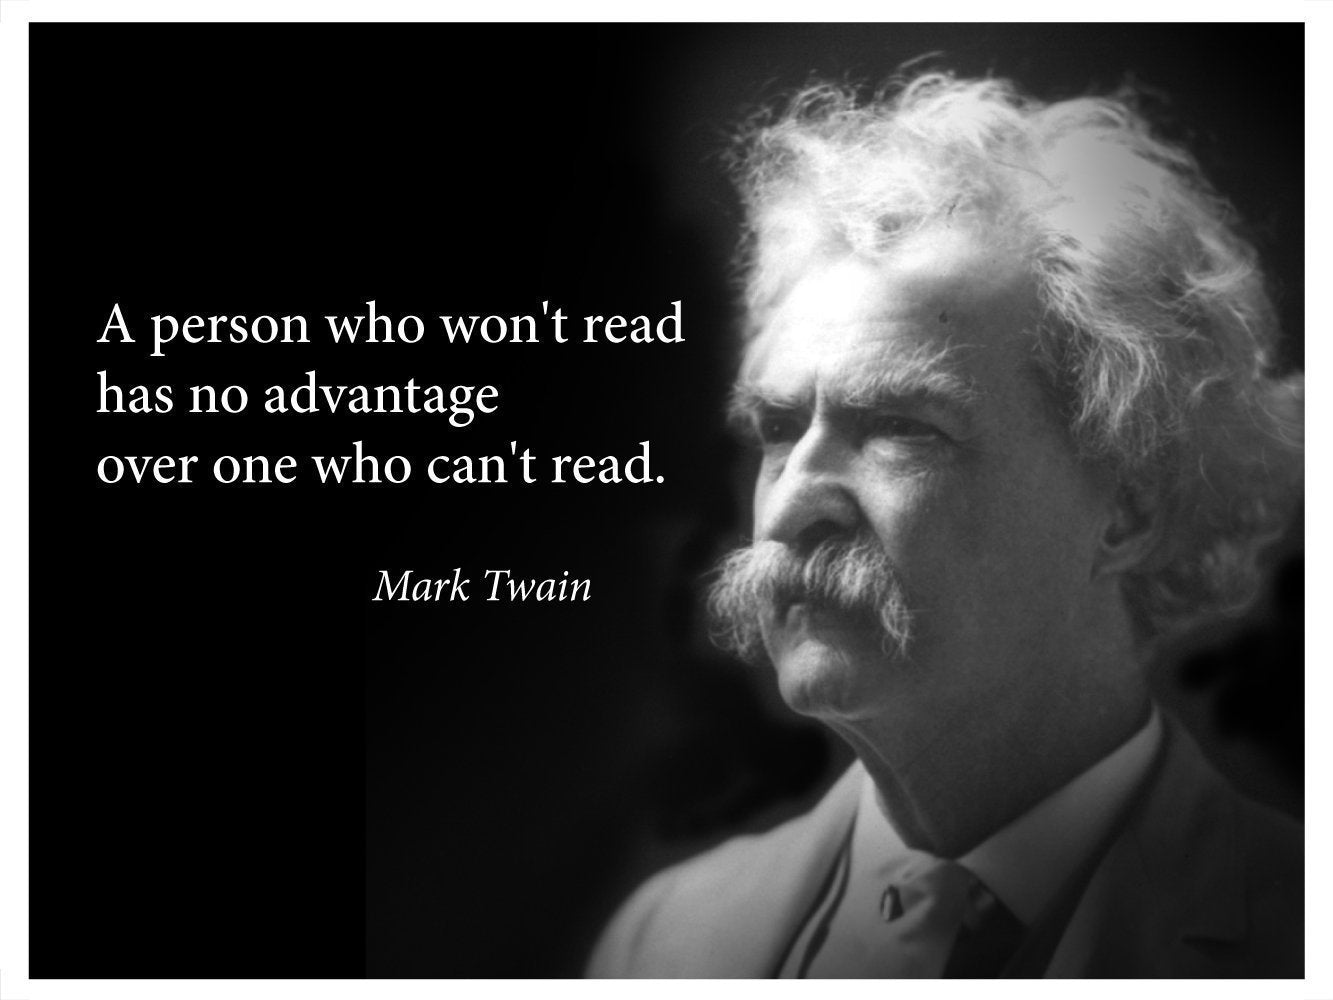 A Person Who Won't Read Quote By Mark Twain Landscape Poster - Young N' Refined